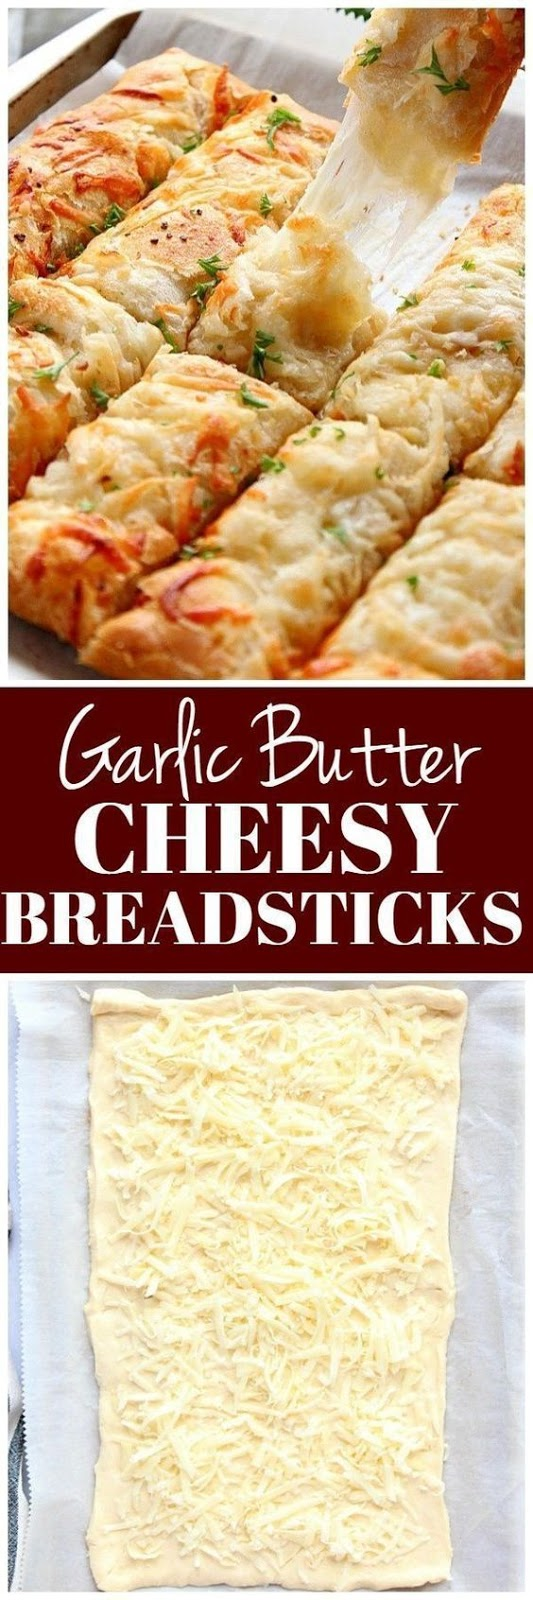 Garlic Butter Cheesy Breadsticks Recipe